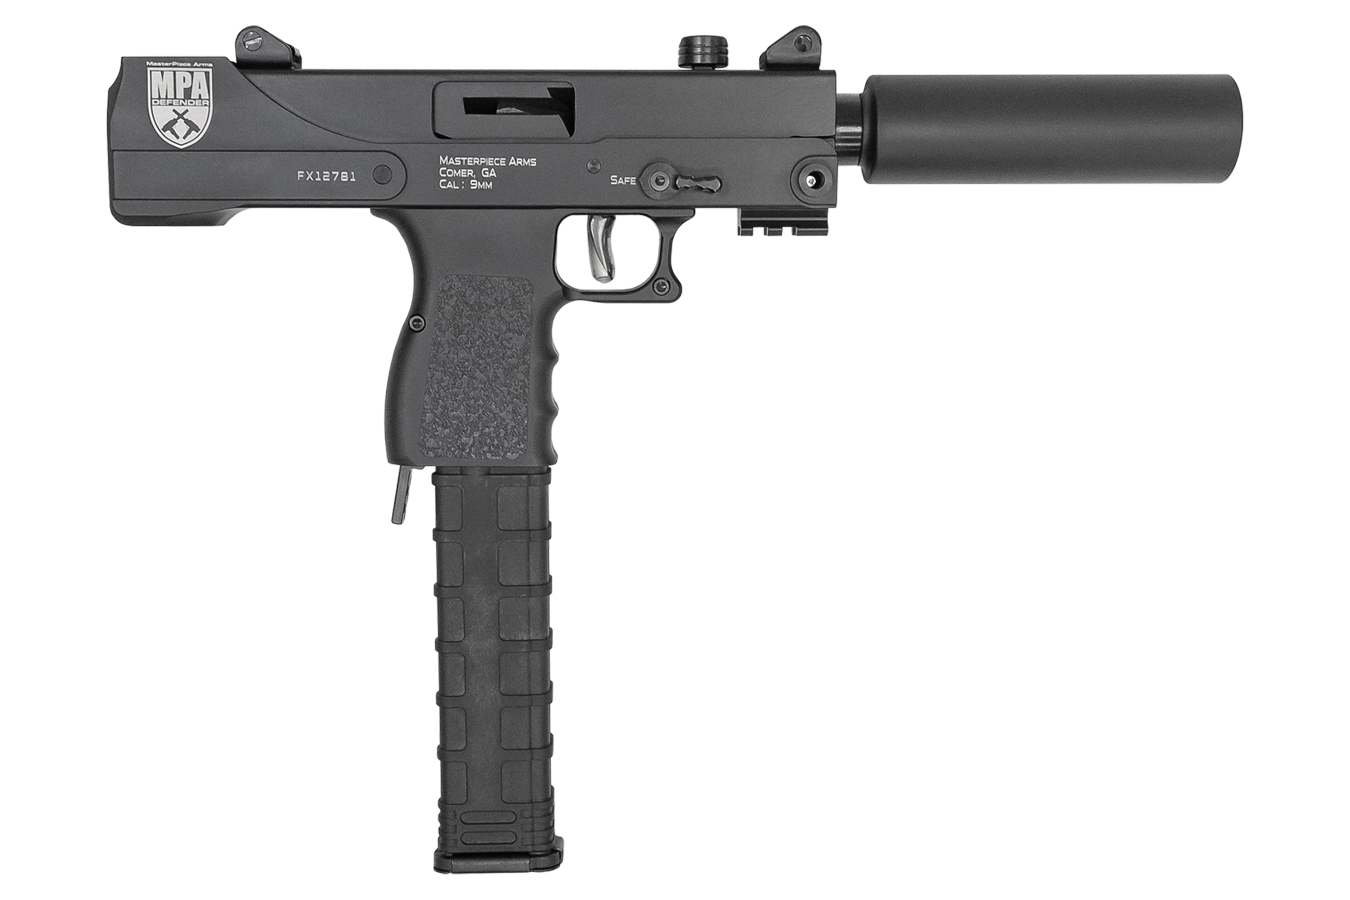 MPA DEFENDER 9MM PISTOL